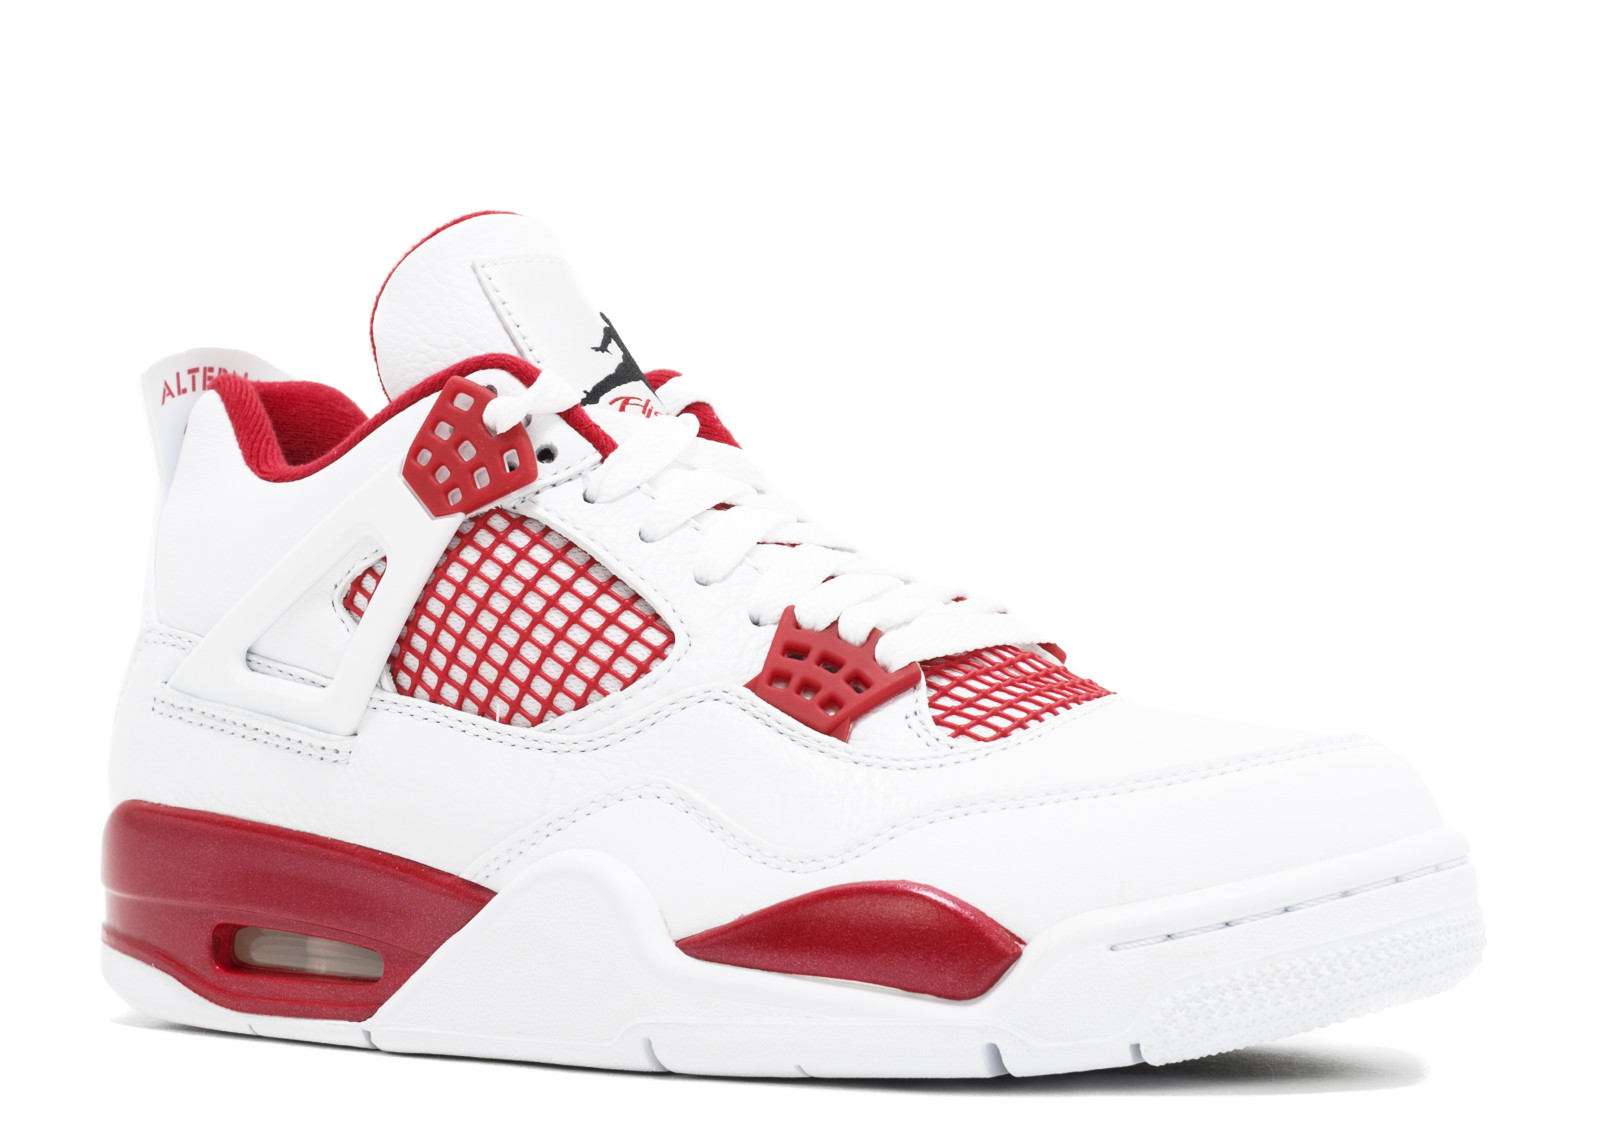 new products 34f06 881bb Air Jordan - Men - Air Jordan 4 Retro  Alternate 89  - 308497-106 - Size 8.5